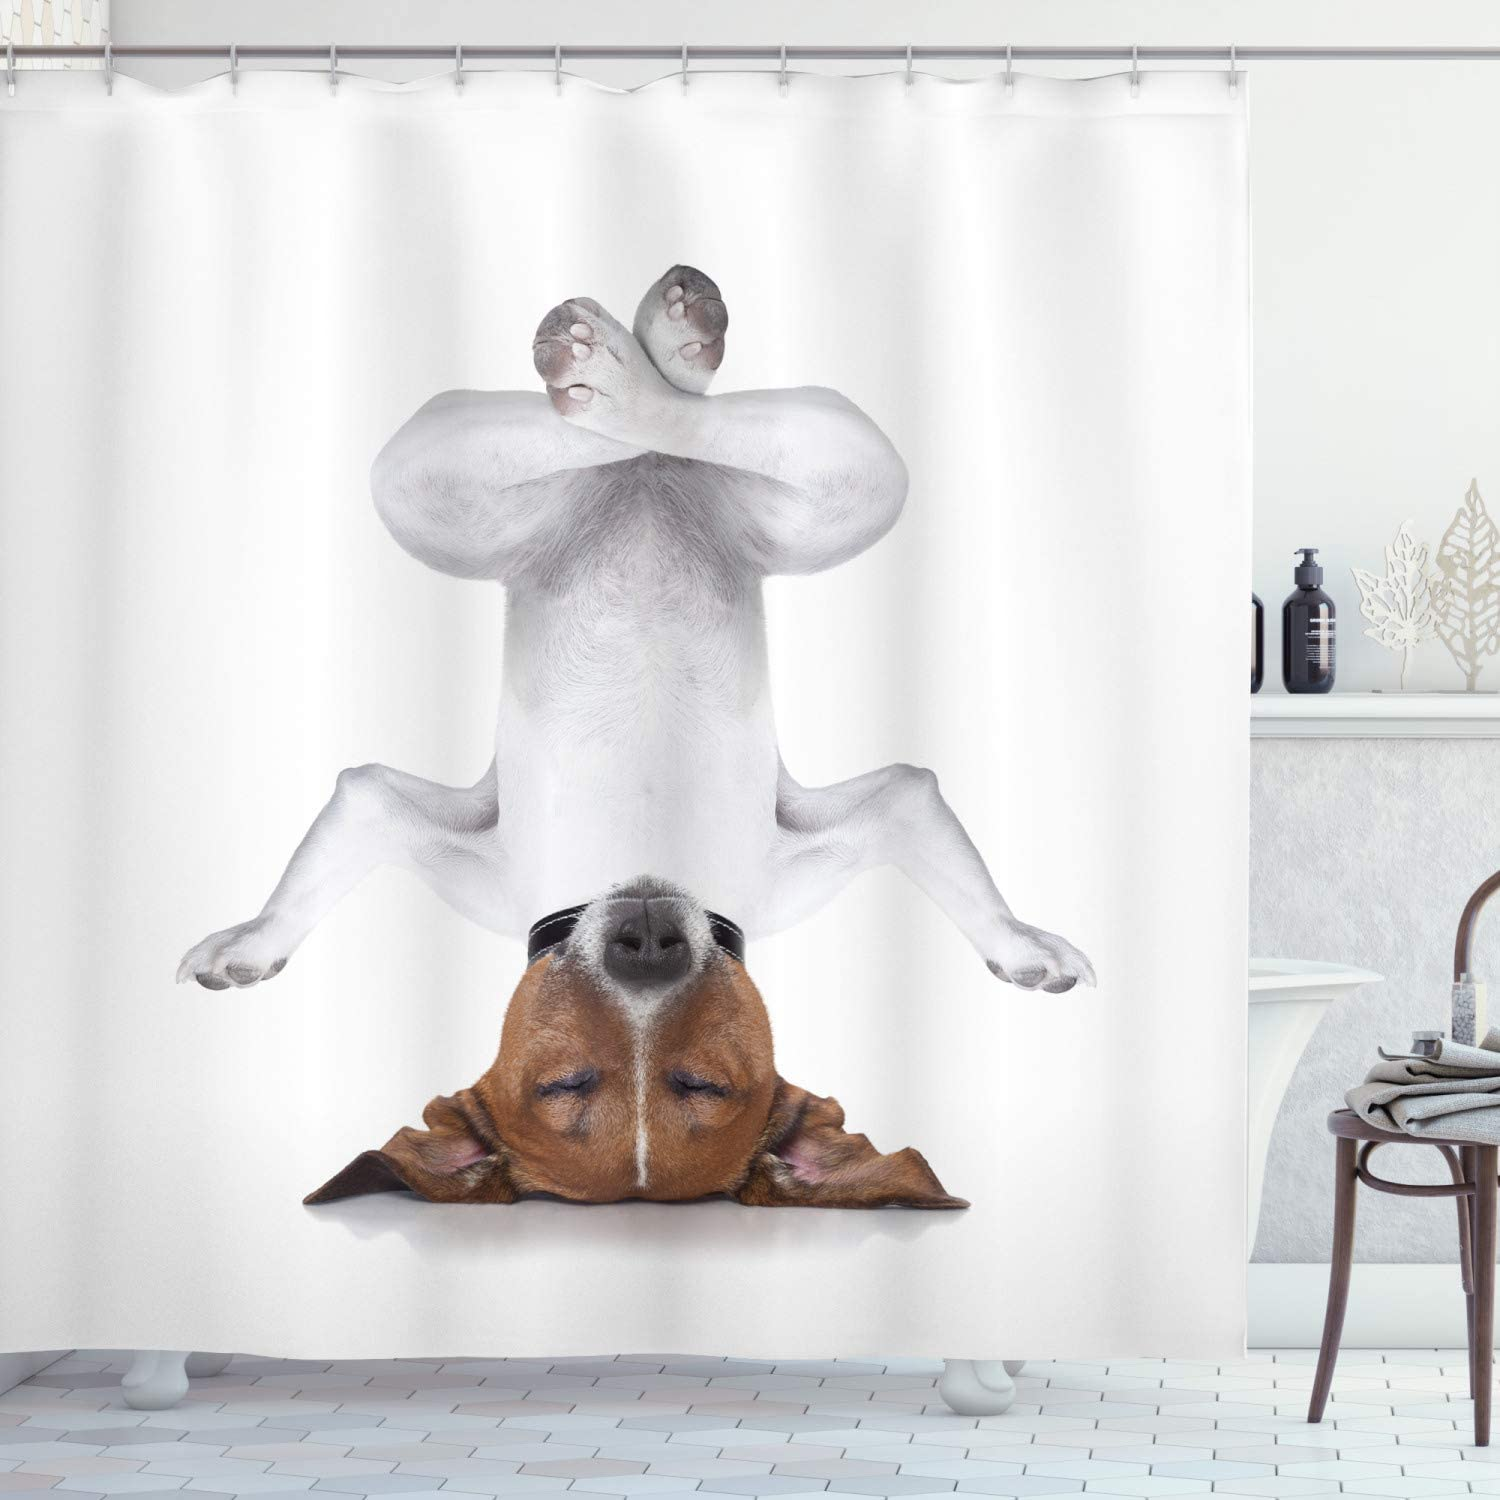 Ambesonne Yoga Shower Curtain, Dog Upside Down Relaxing with Closed Eyes Doing Yoga Calm Therapy Humor Animal Print, Cloth Fabric Bathroom Decor Set with Hooks, 84